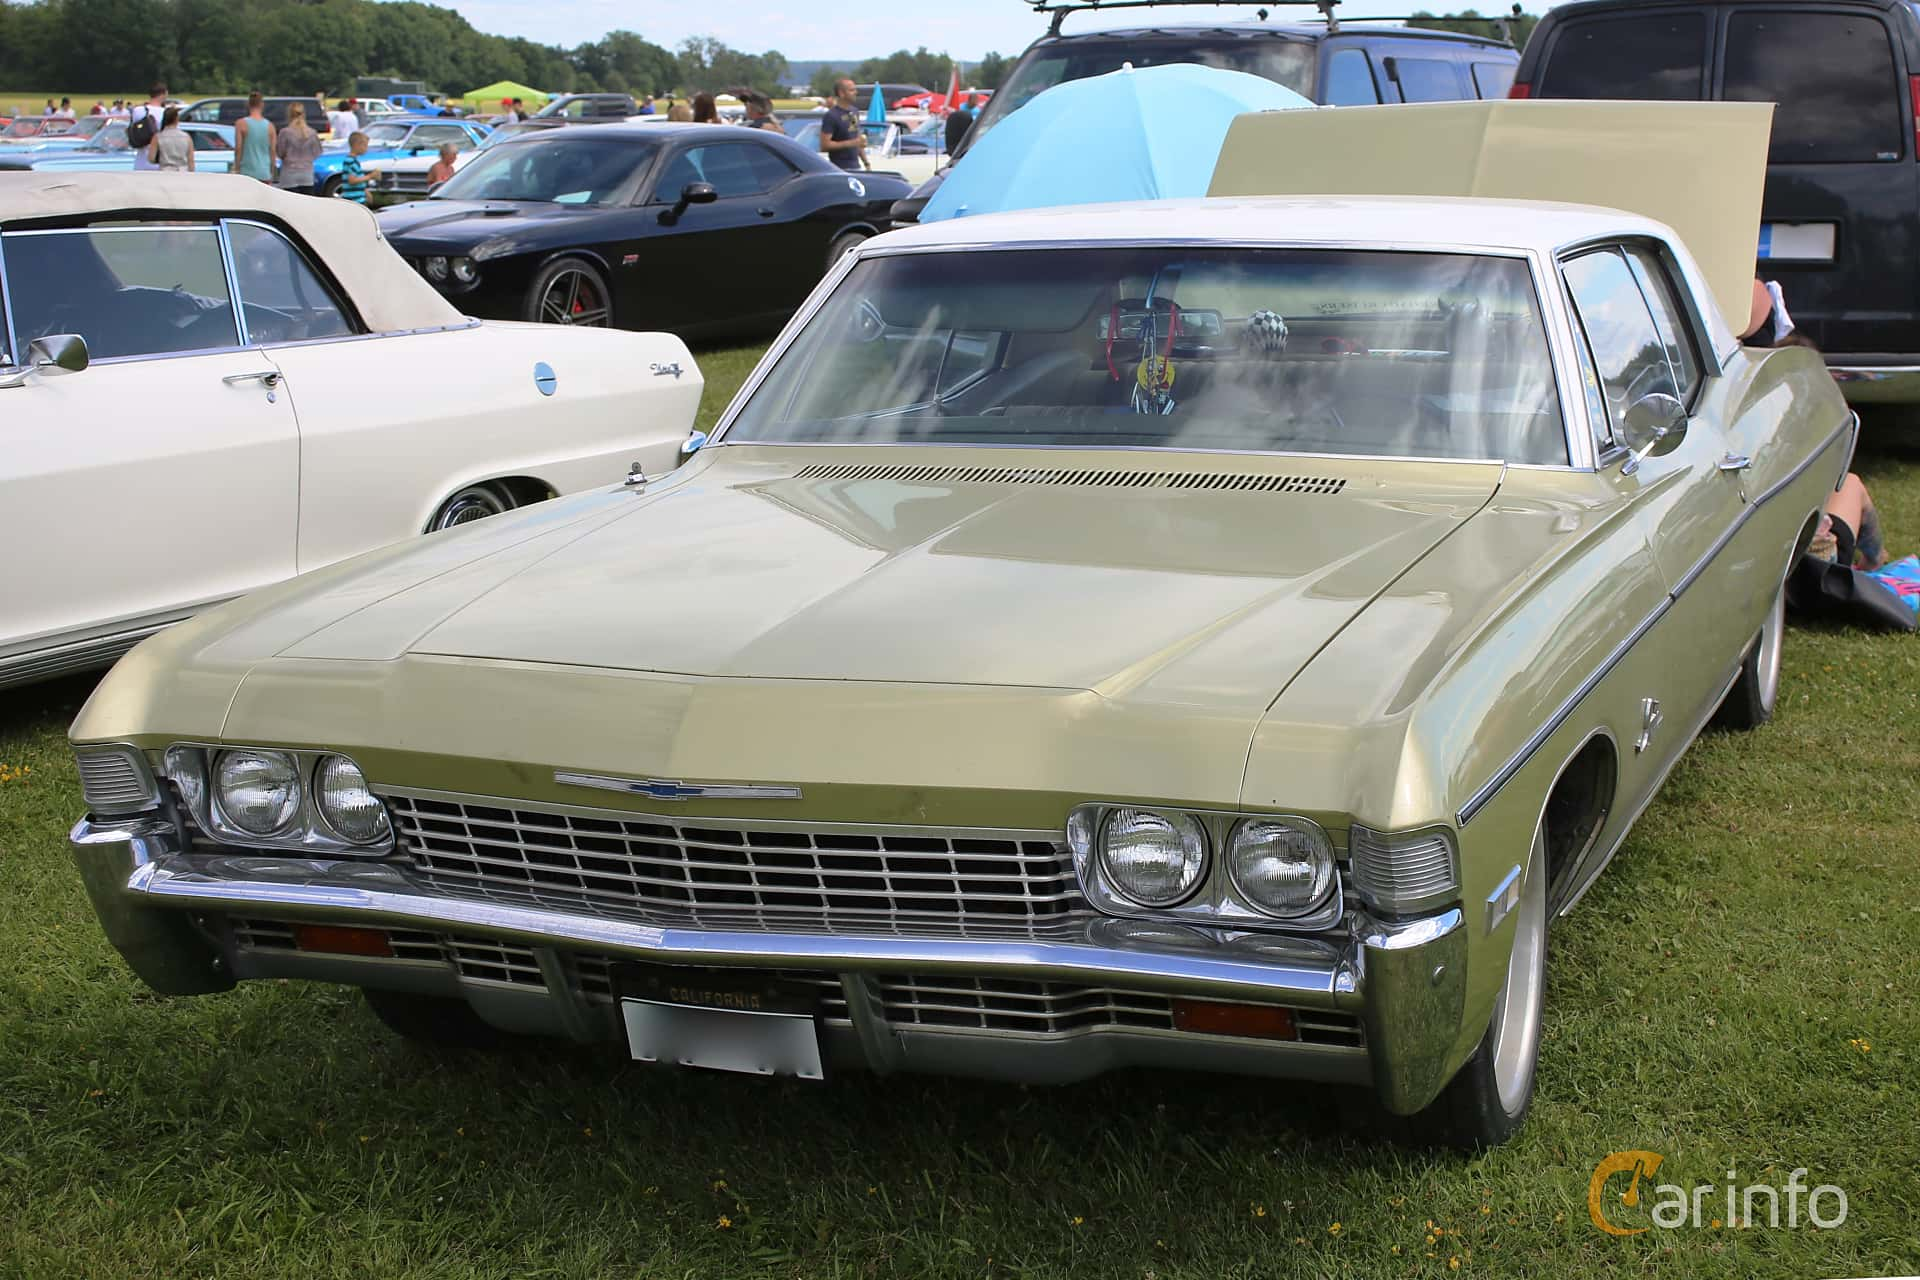 1 Images Of Chevrolet Impala Custom Coup 54 V8 Powerglide 279hp 1968 Coupe Front Side 279ps At